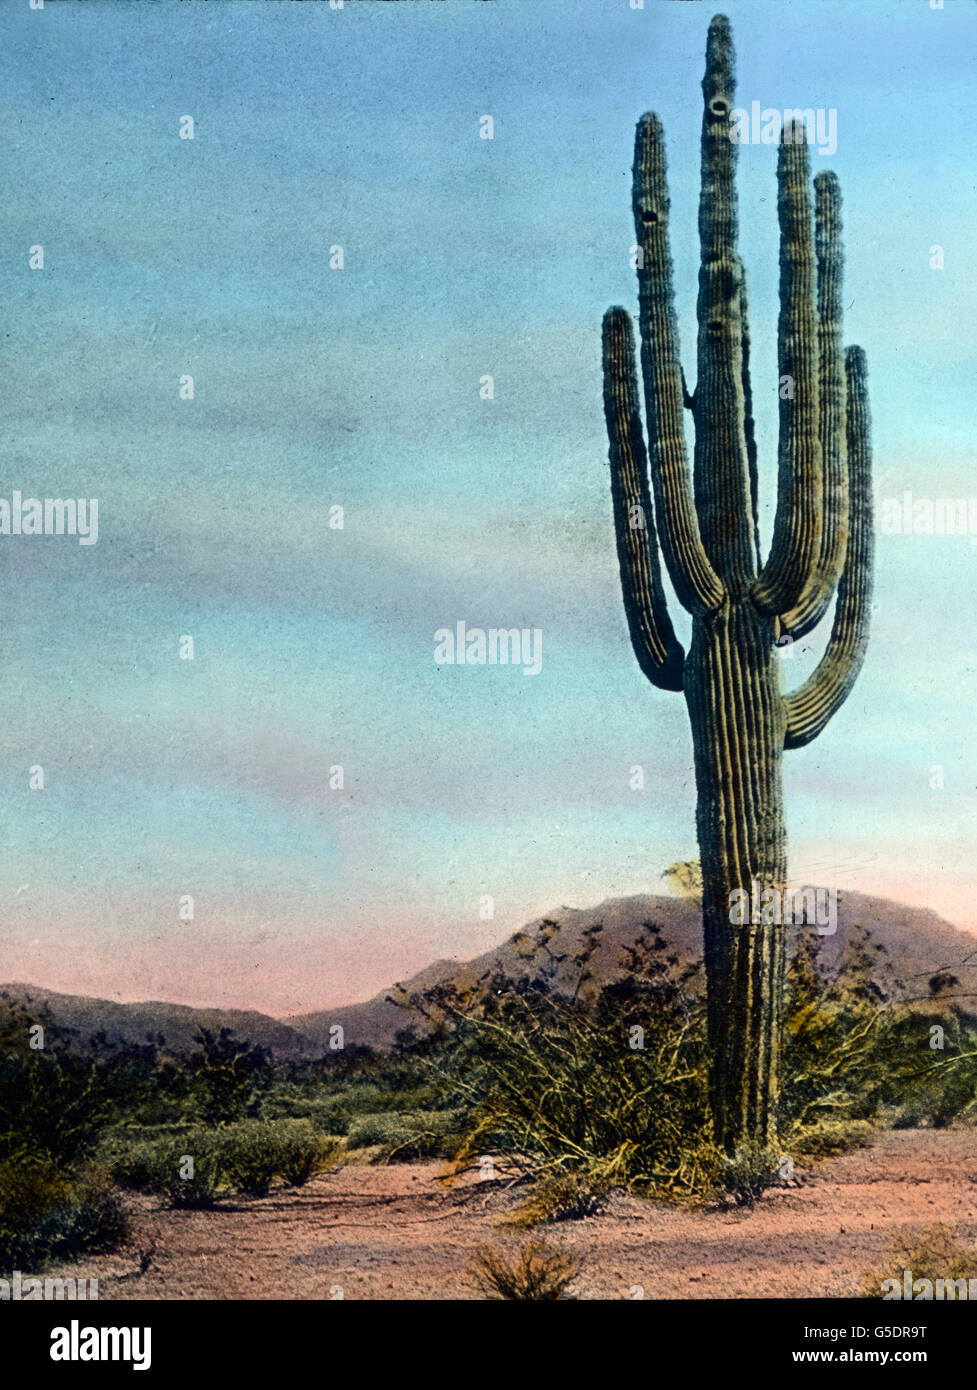 Ein Riesenkaktus in der Wüste es US-Bundesstaats Arizona.  Amerika, America, Northern, North, USA, United States Stock Photo